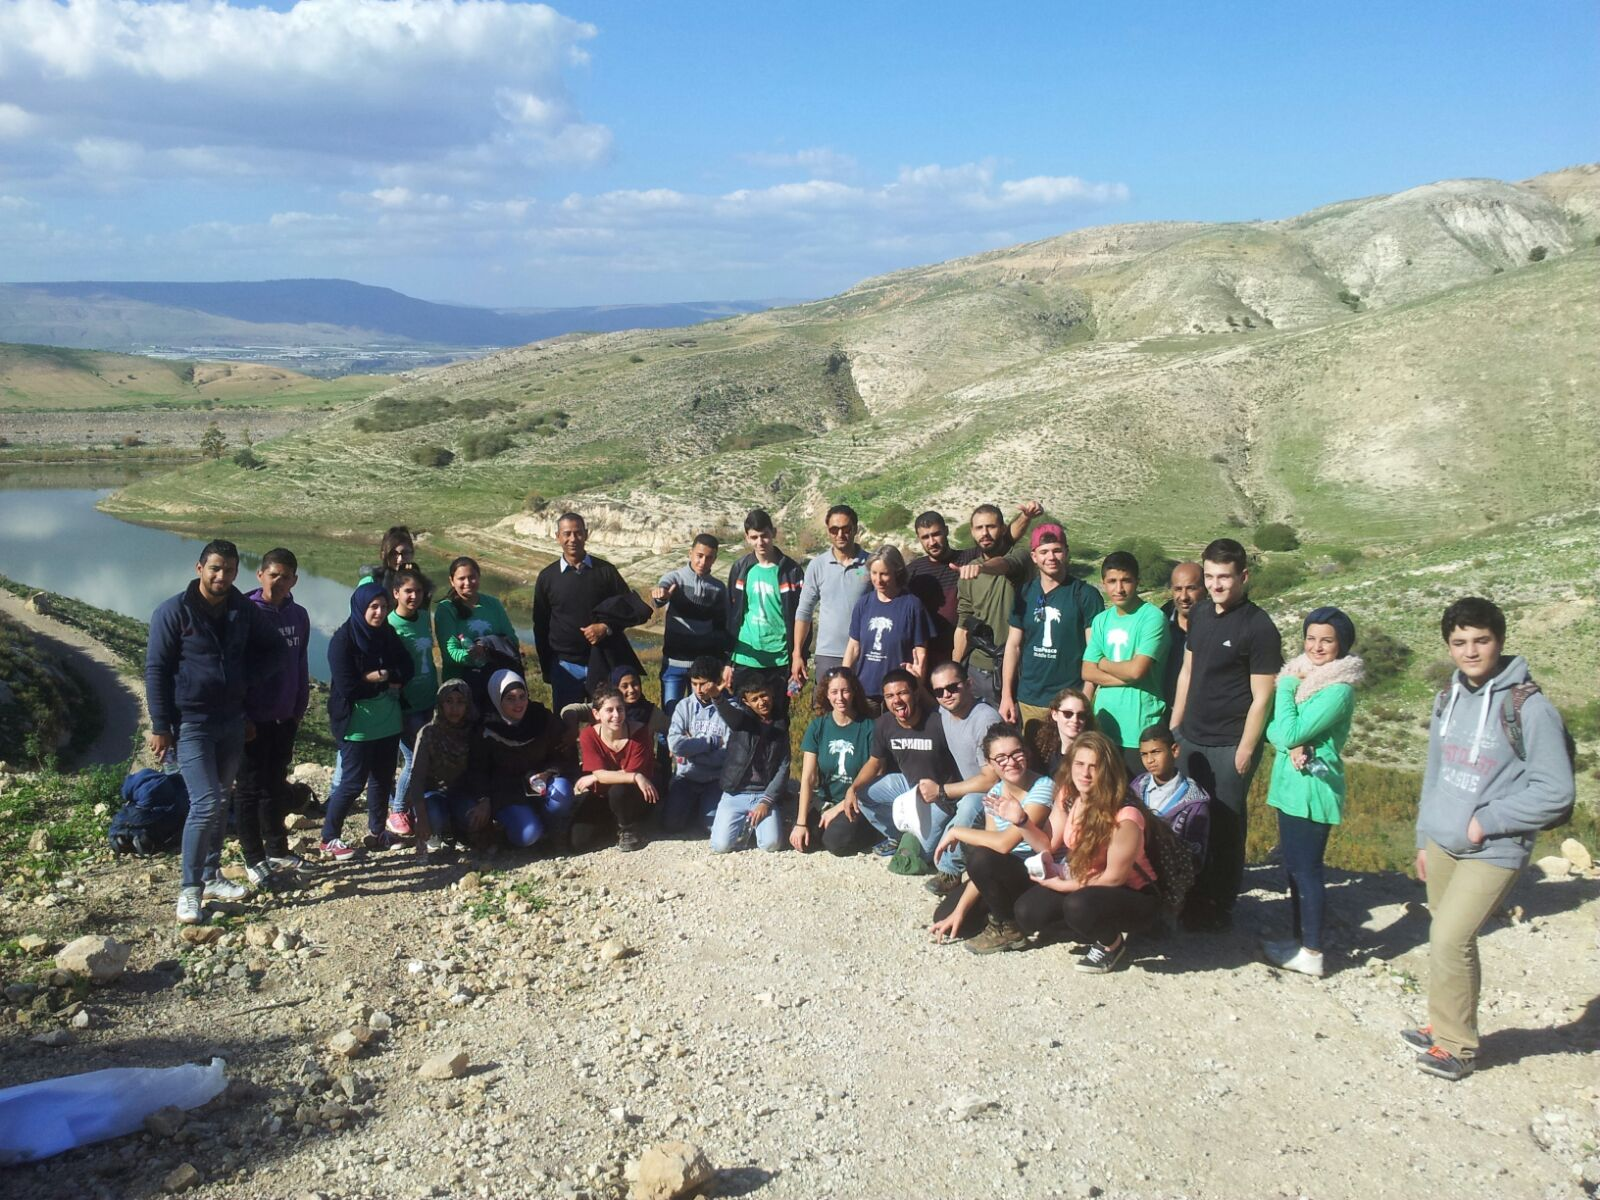 Youth Camp in SHE Jordan